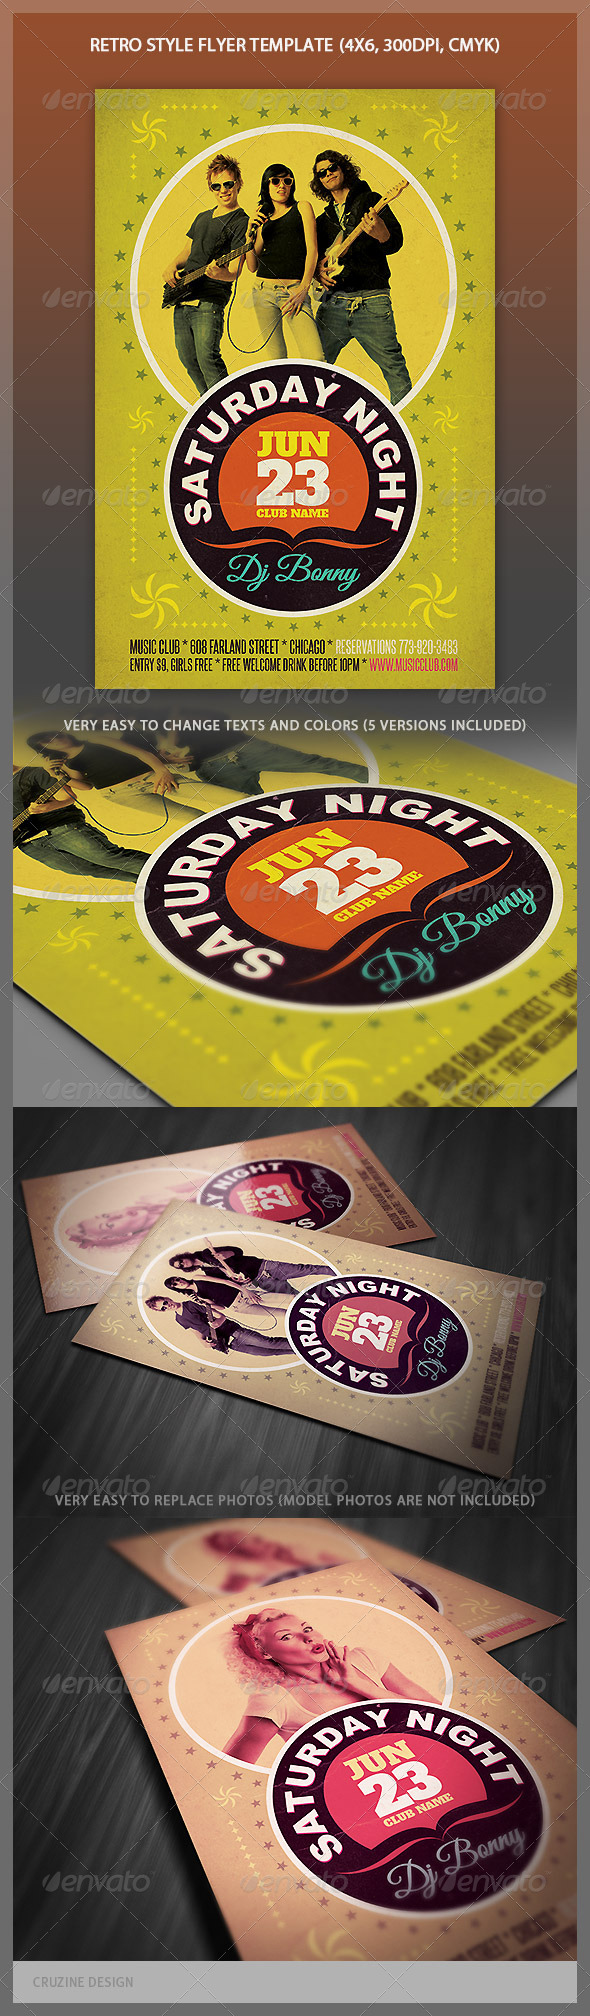 Retro Style Flyer - Events Flyers